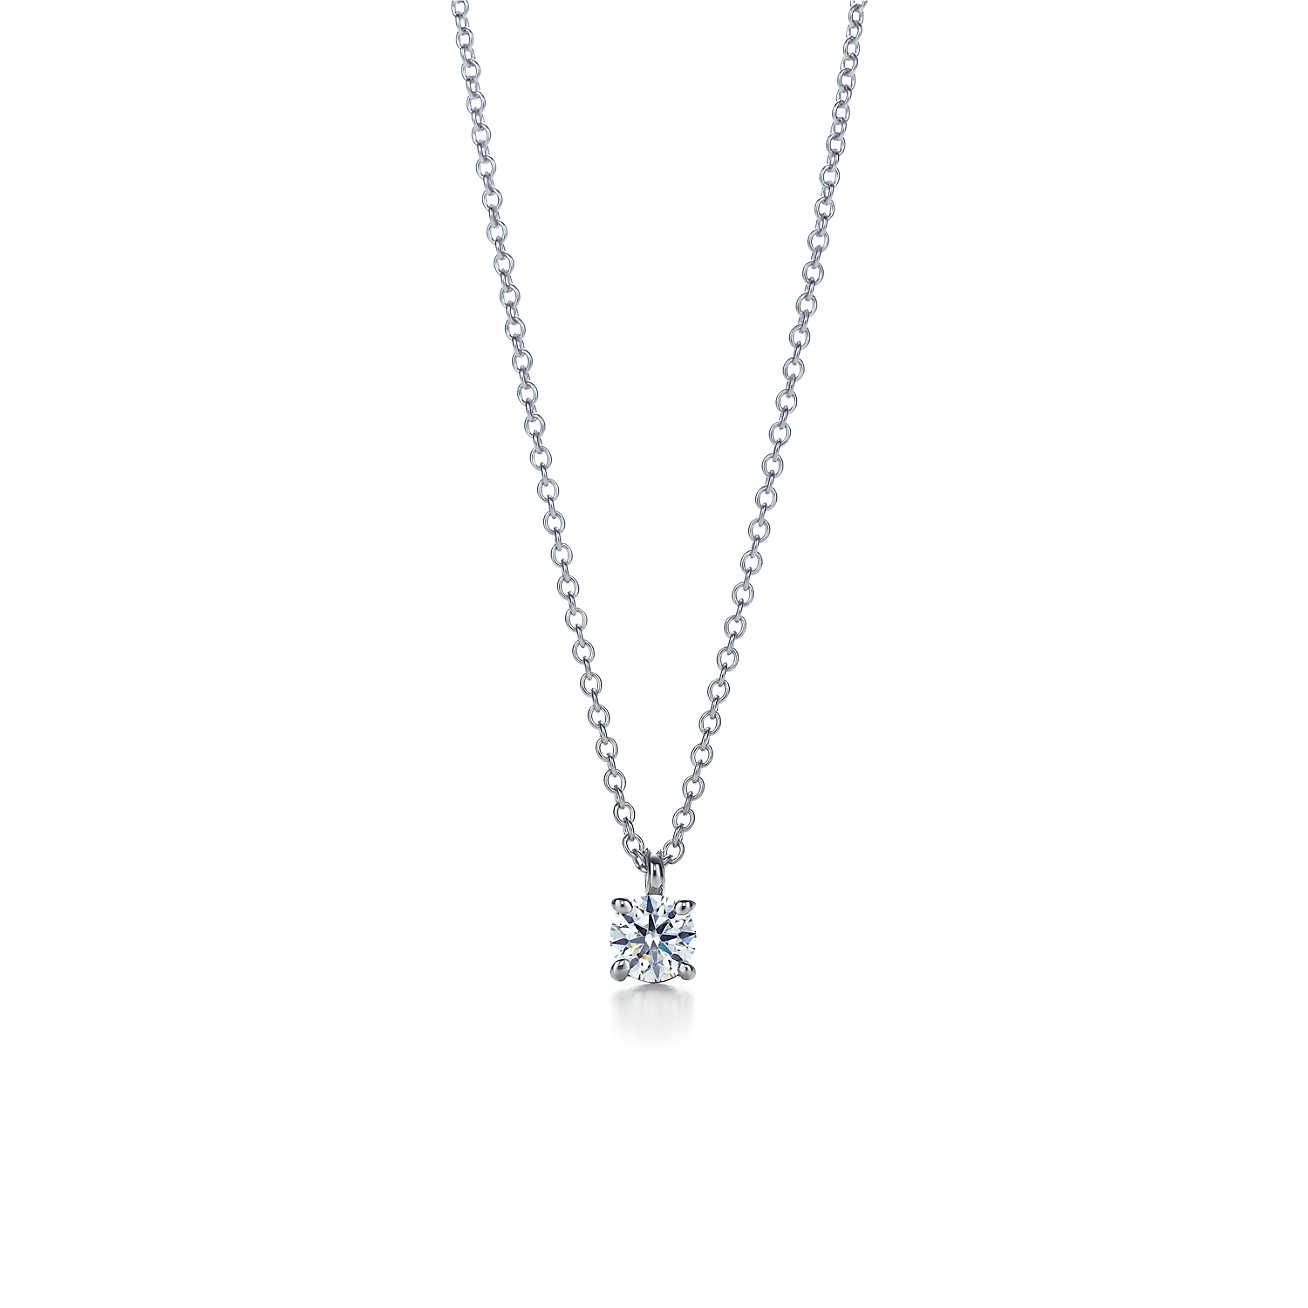 SOLITAIRE CROSS 14K WHITE GOLD FINISH 925 STERLING SILVER CZ BEAUTIFUL PENDANTS